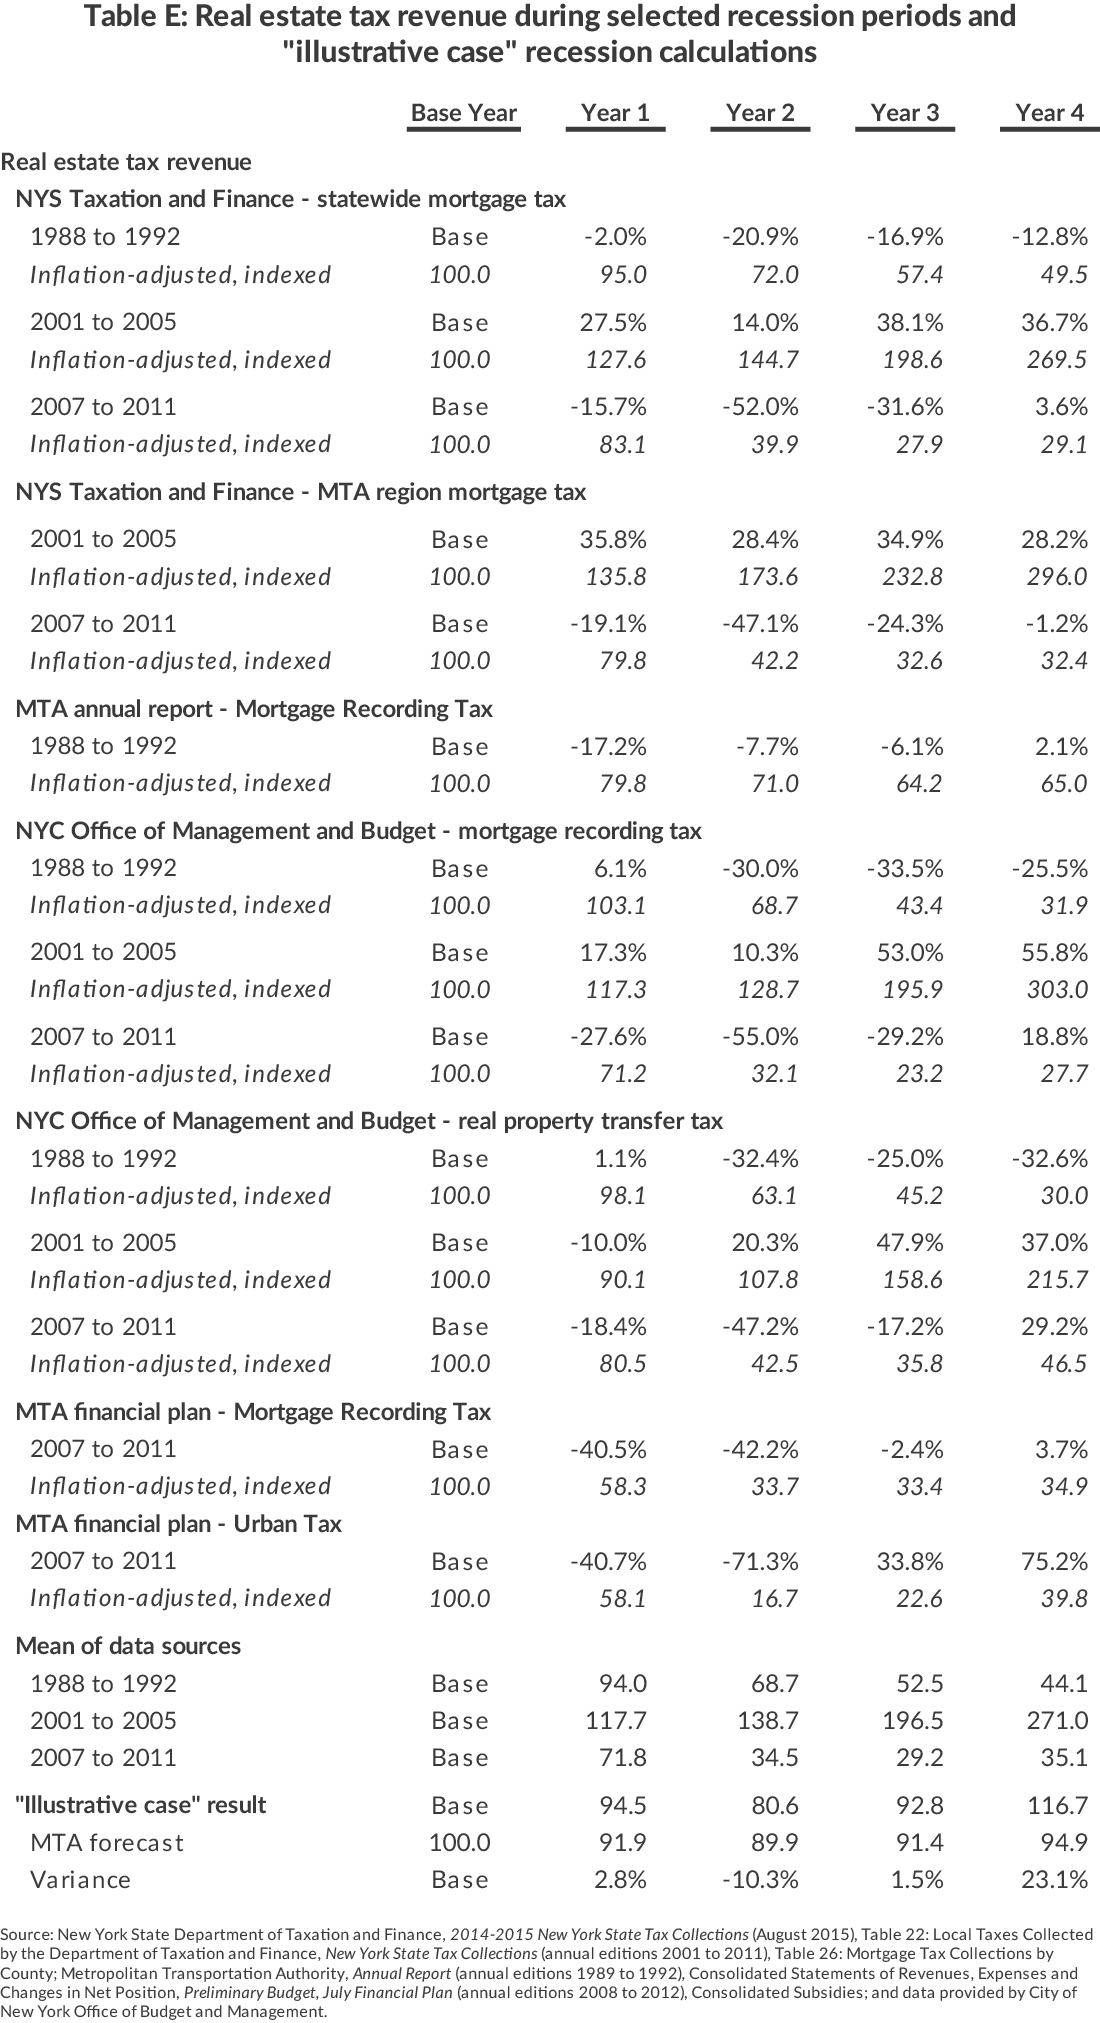 "Table E: Real Estate Tax Revenue During Selected Recession Periods and""Illustrative Case"" Recession CalculationsSource"